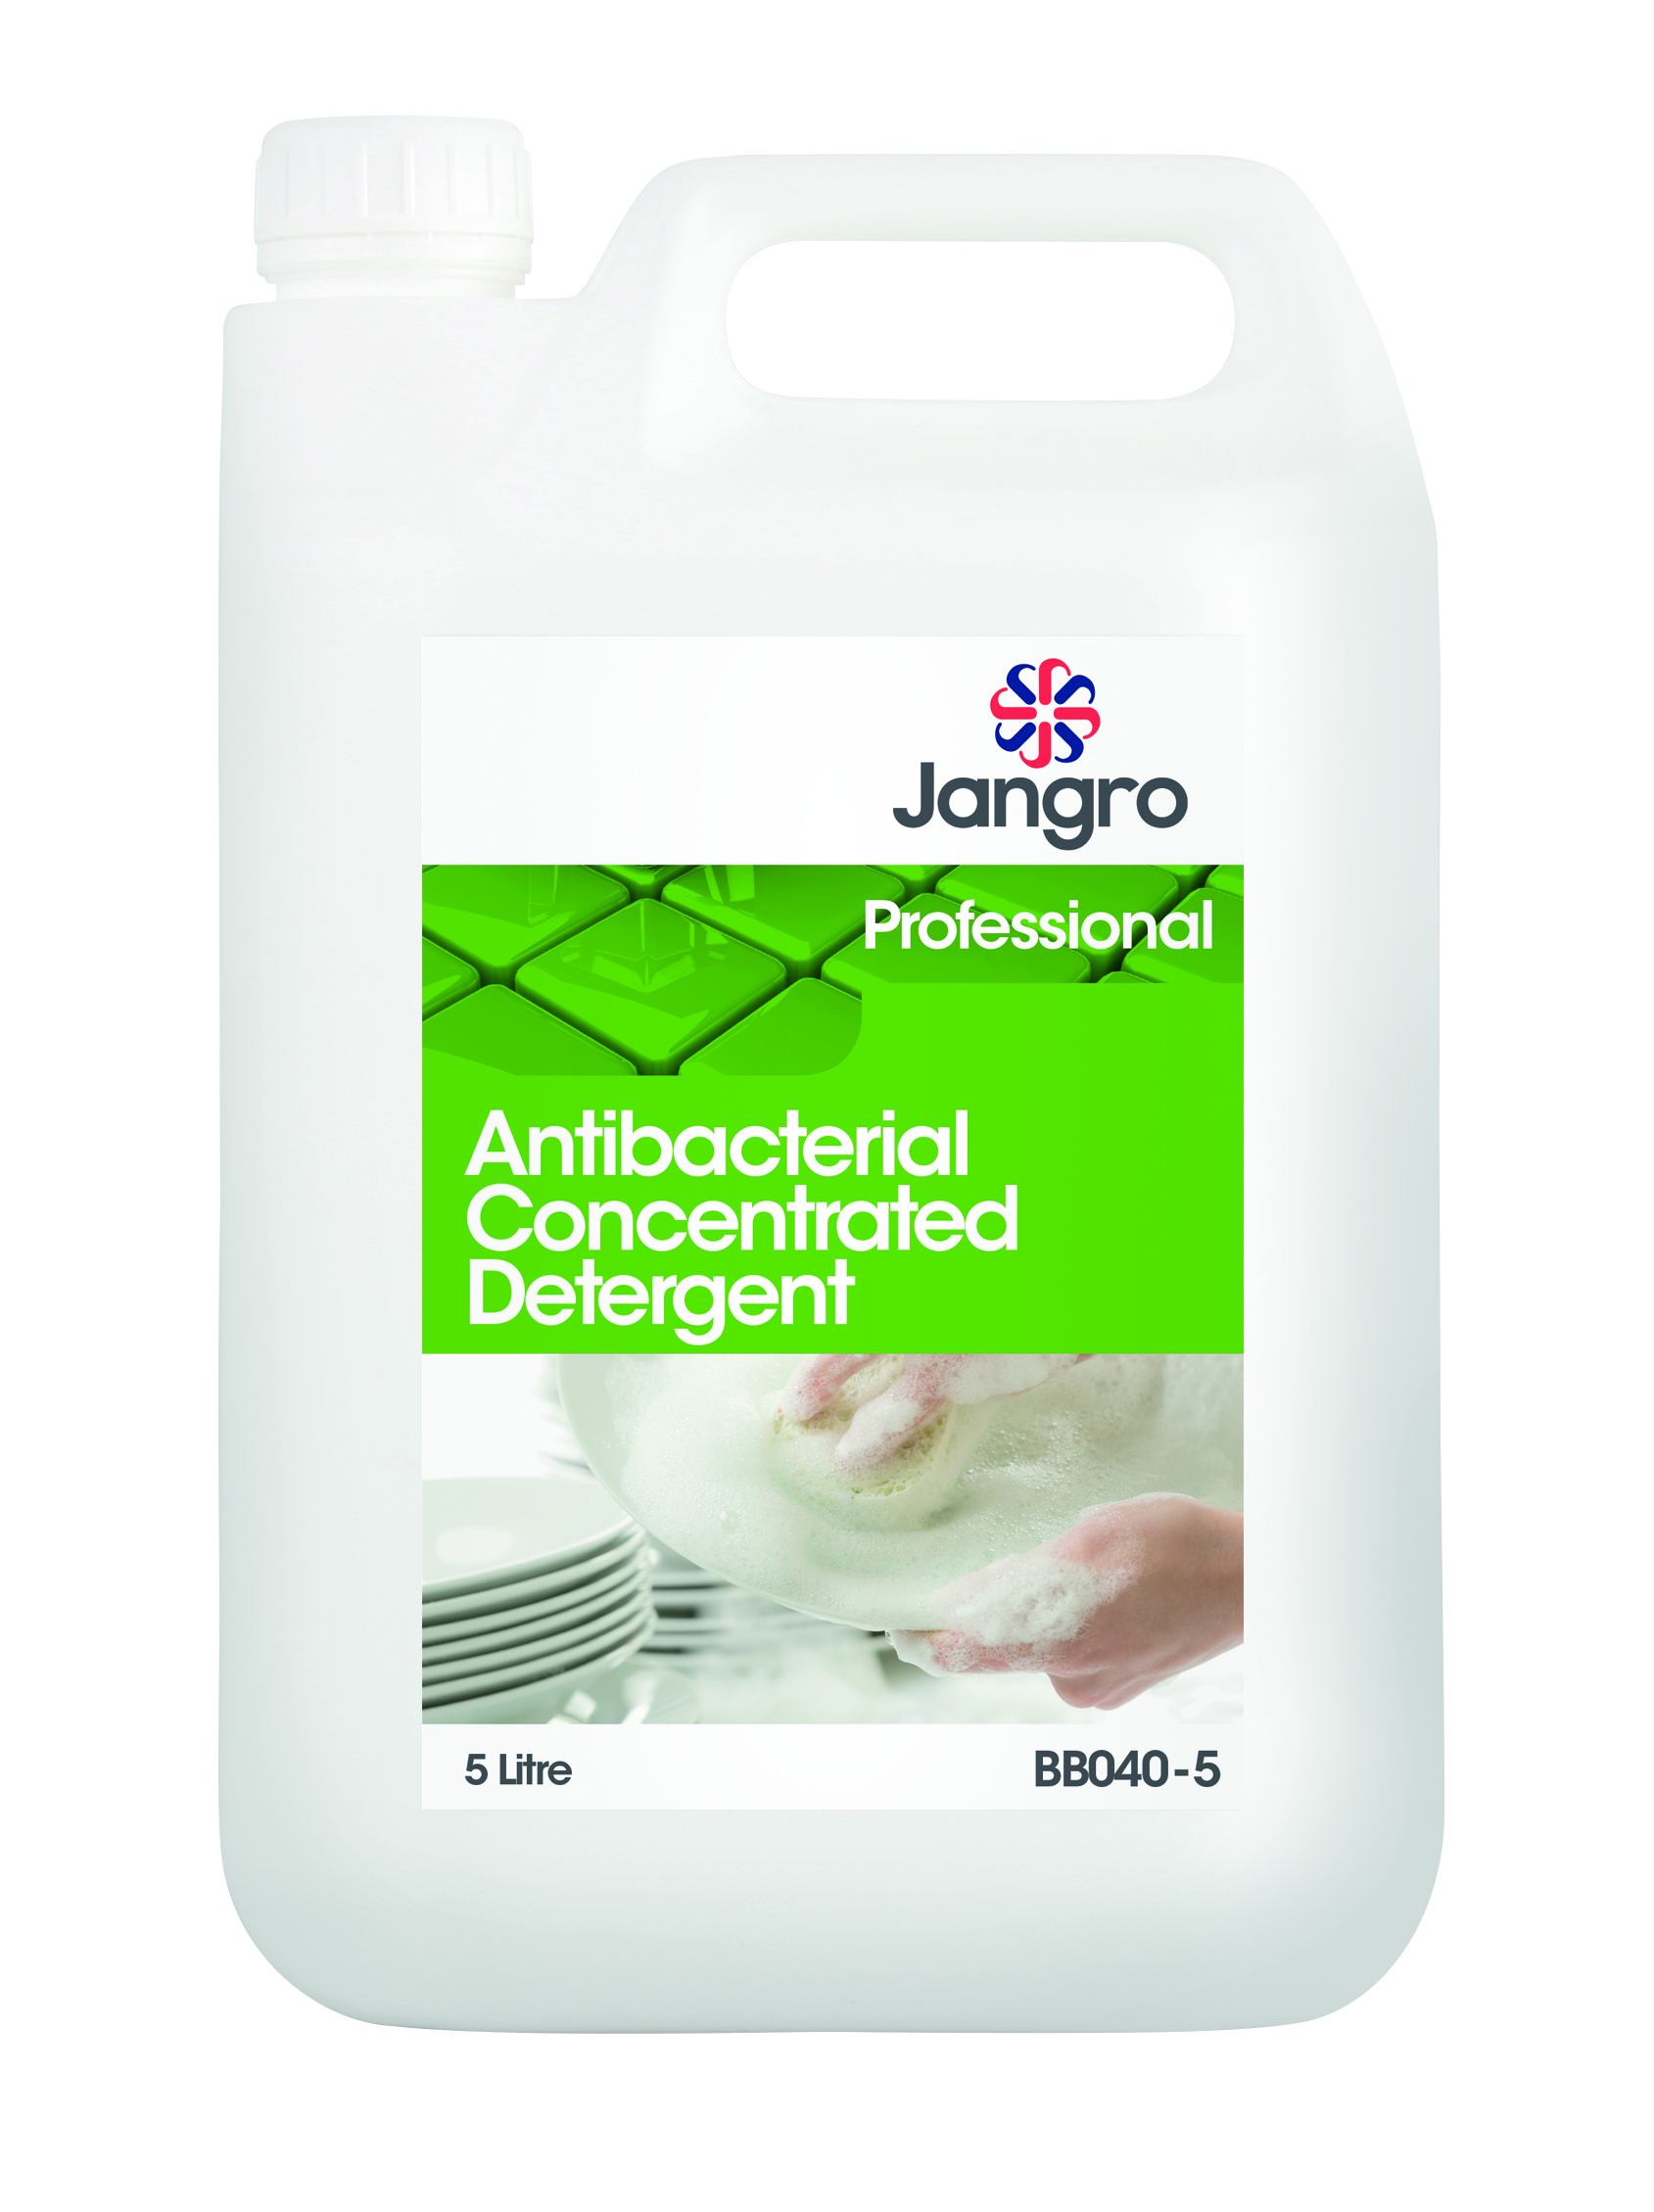 Antibacterial Concentrated Detergent 23% 5 Litre